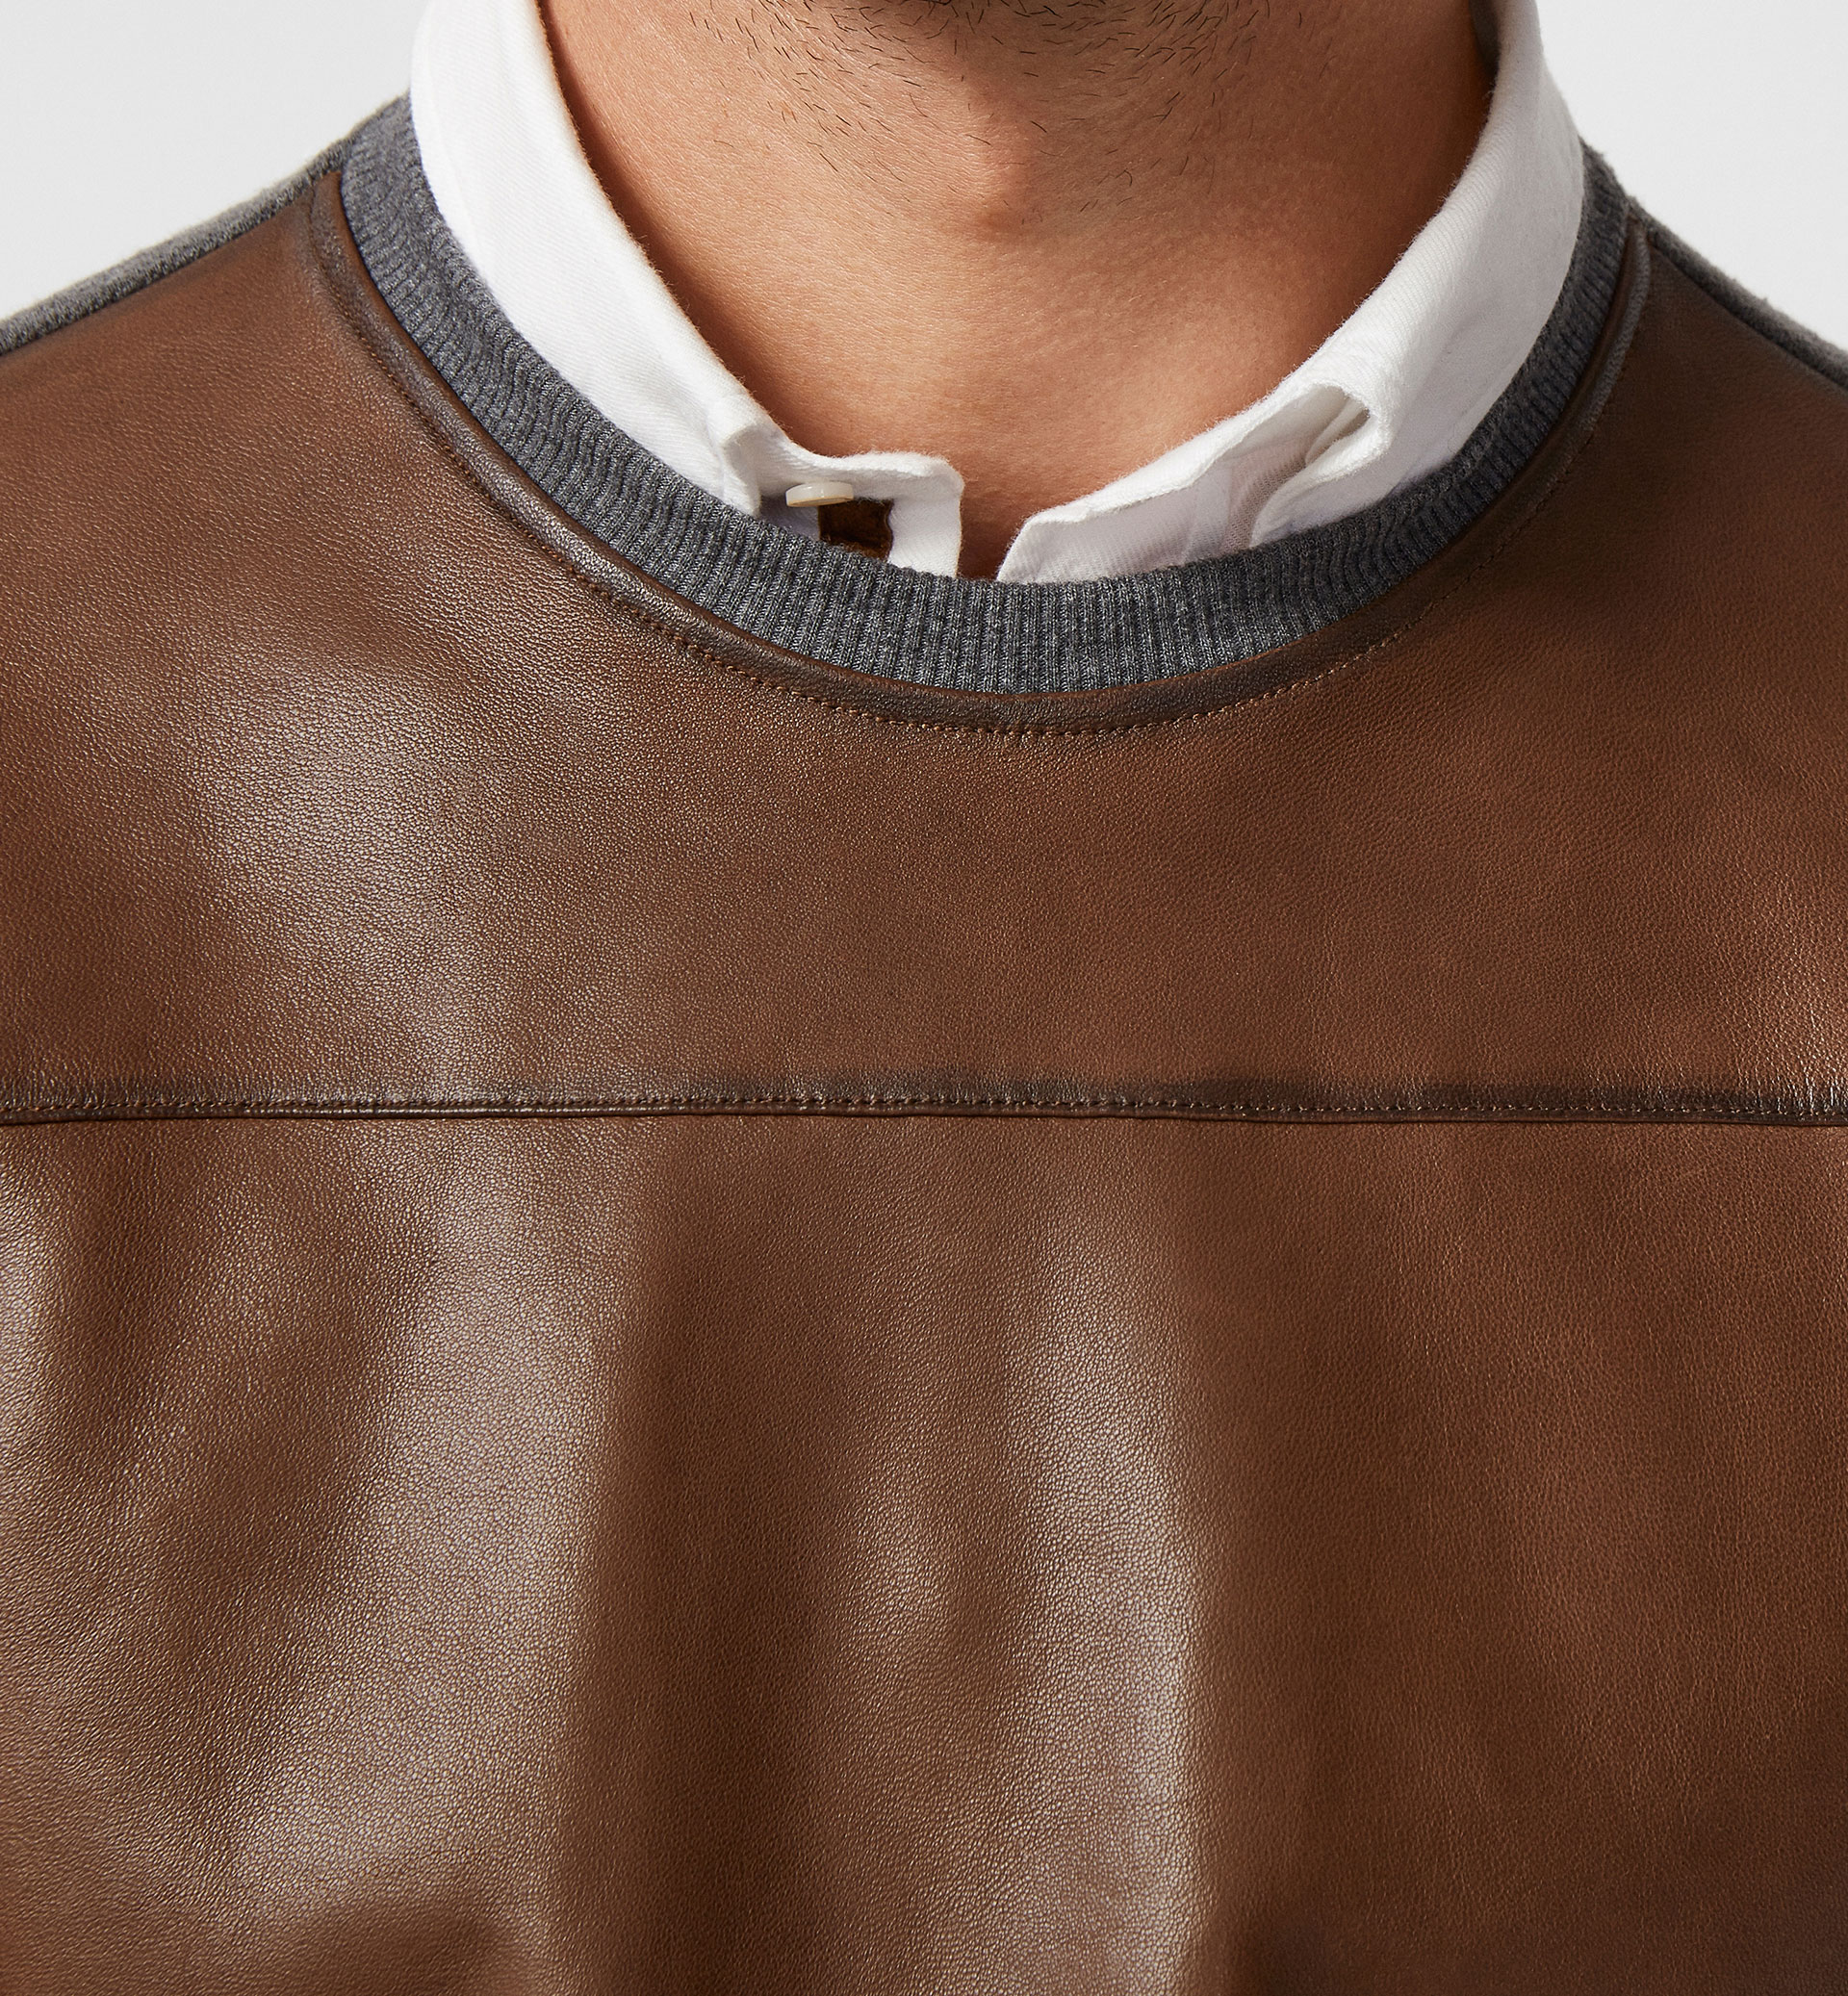 LIMITED EDITION COMBINED NAPPA LEATHER SWEATSHIRT